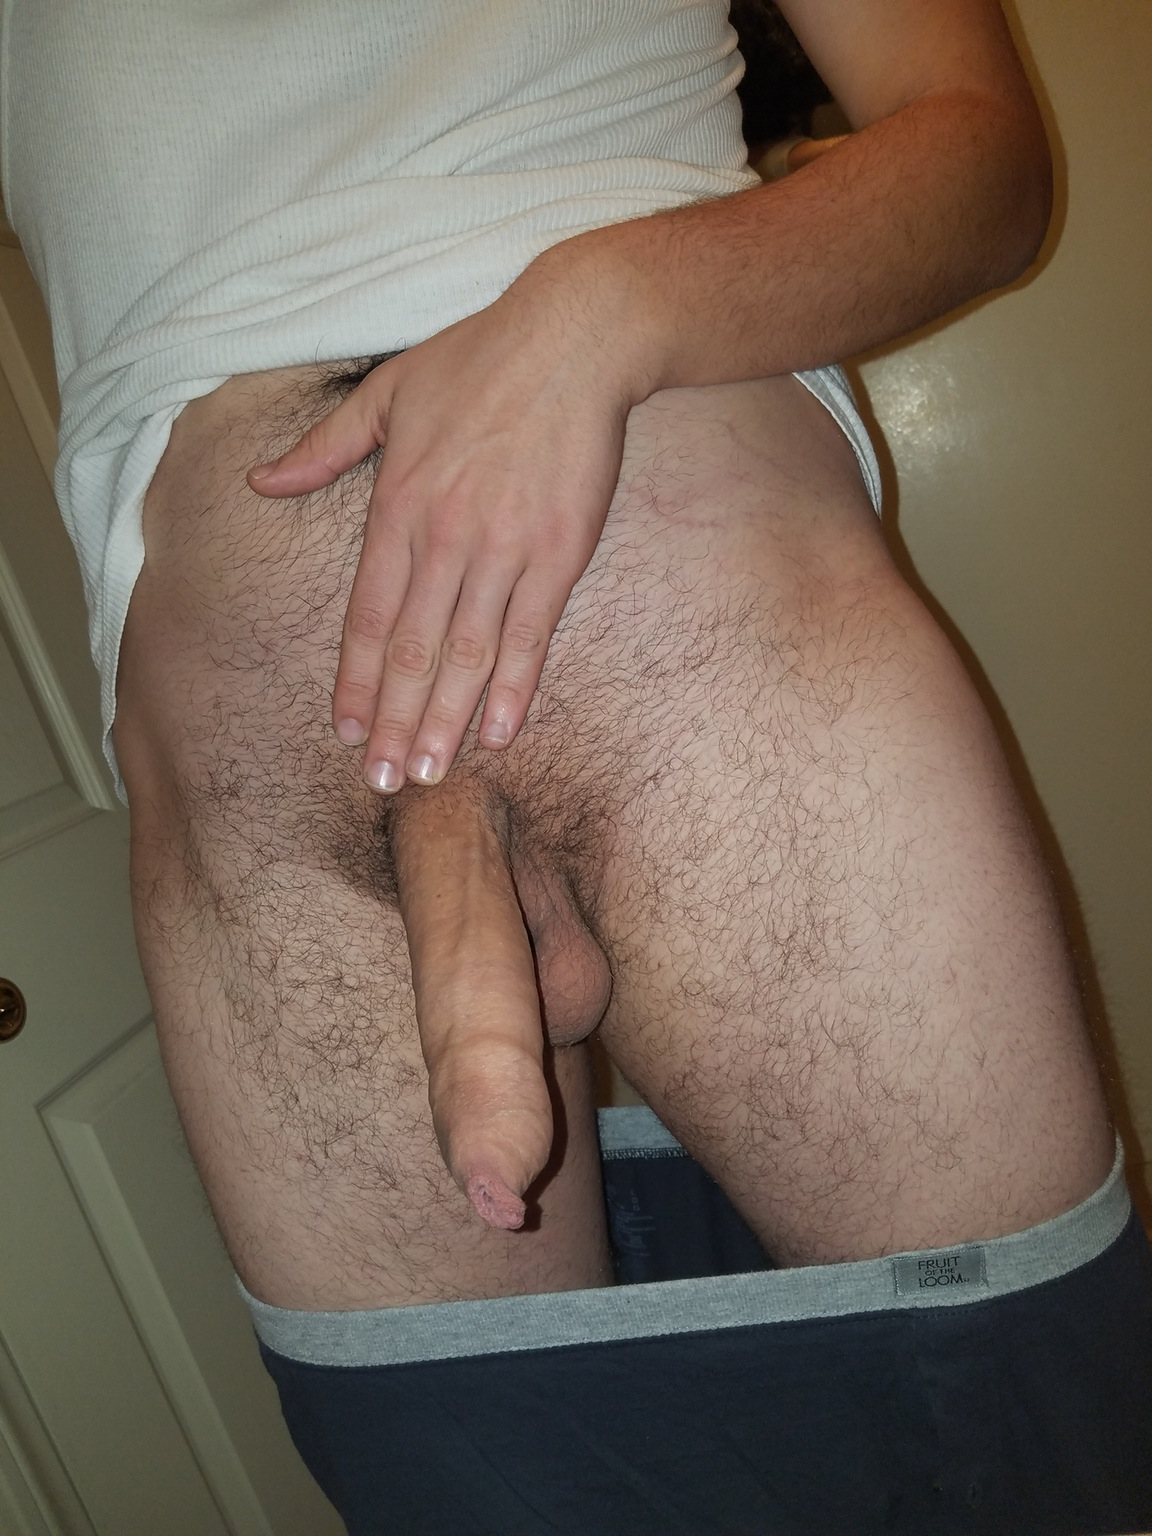 Black men with foreskins cumming gay ian